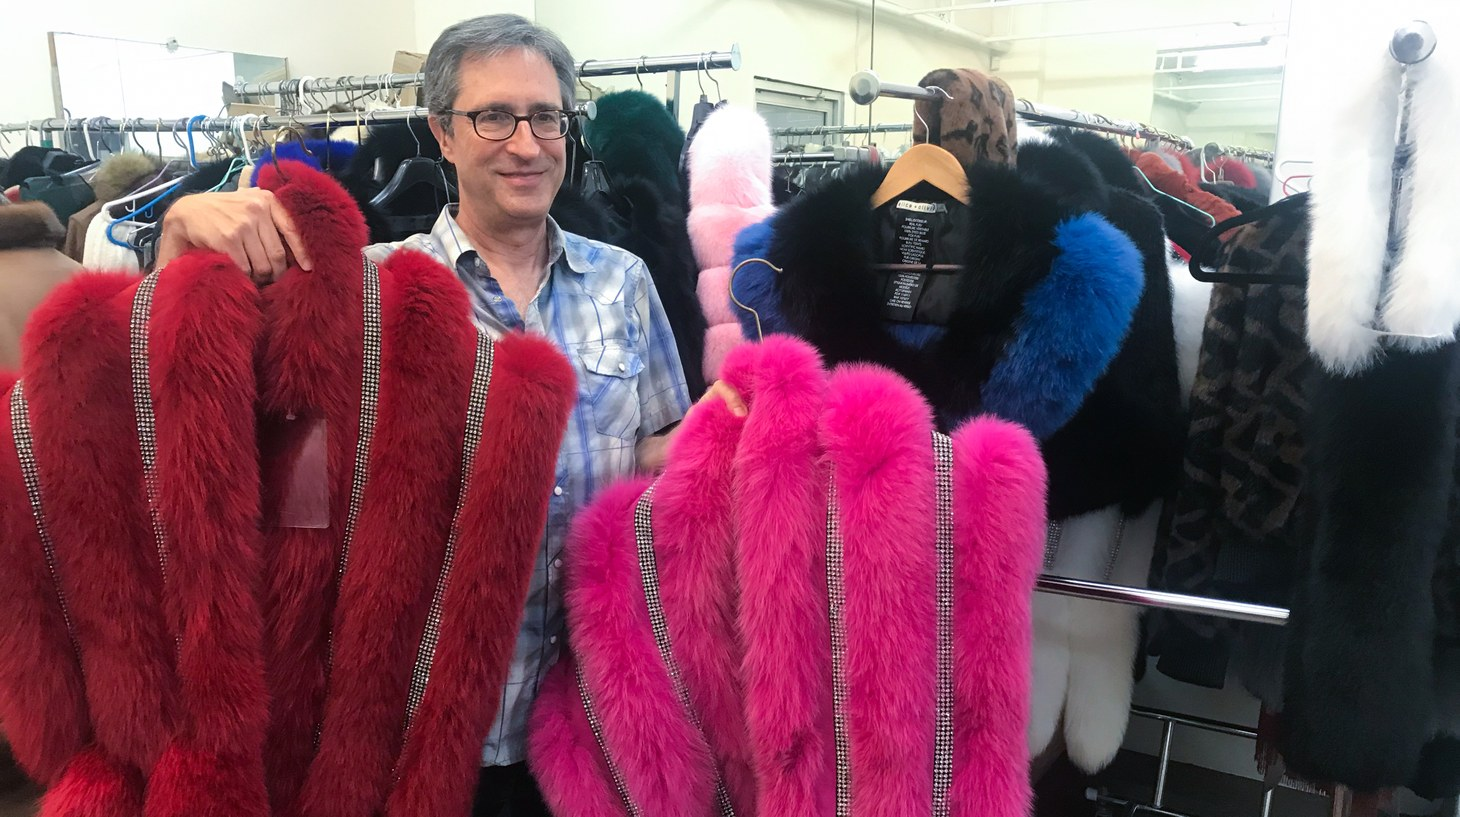 Daniel Wachtenheim shows off some new fur coats at Wachtenheim Furs in downtown Los Angeles.